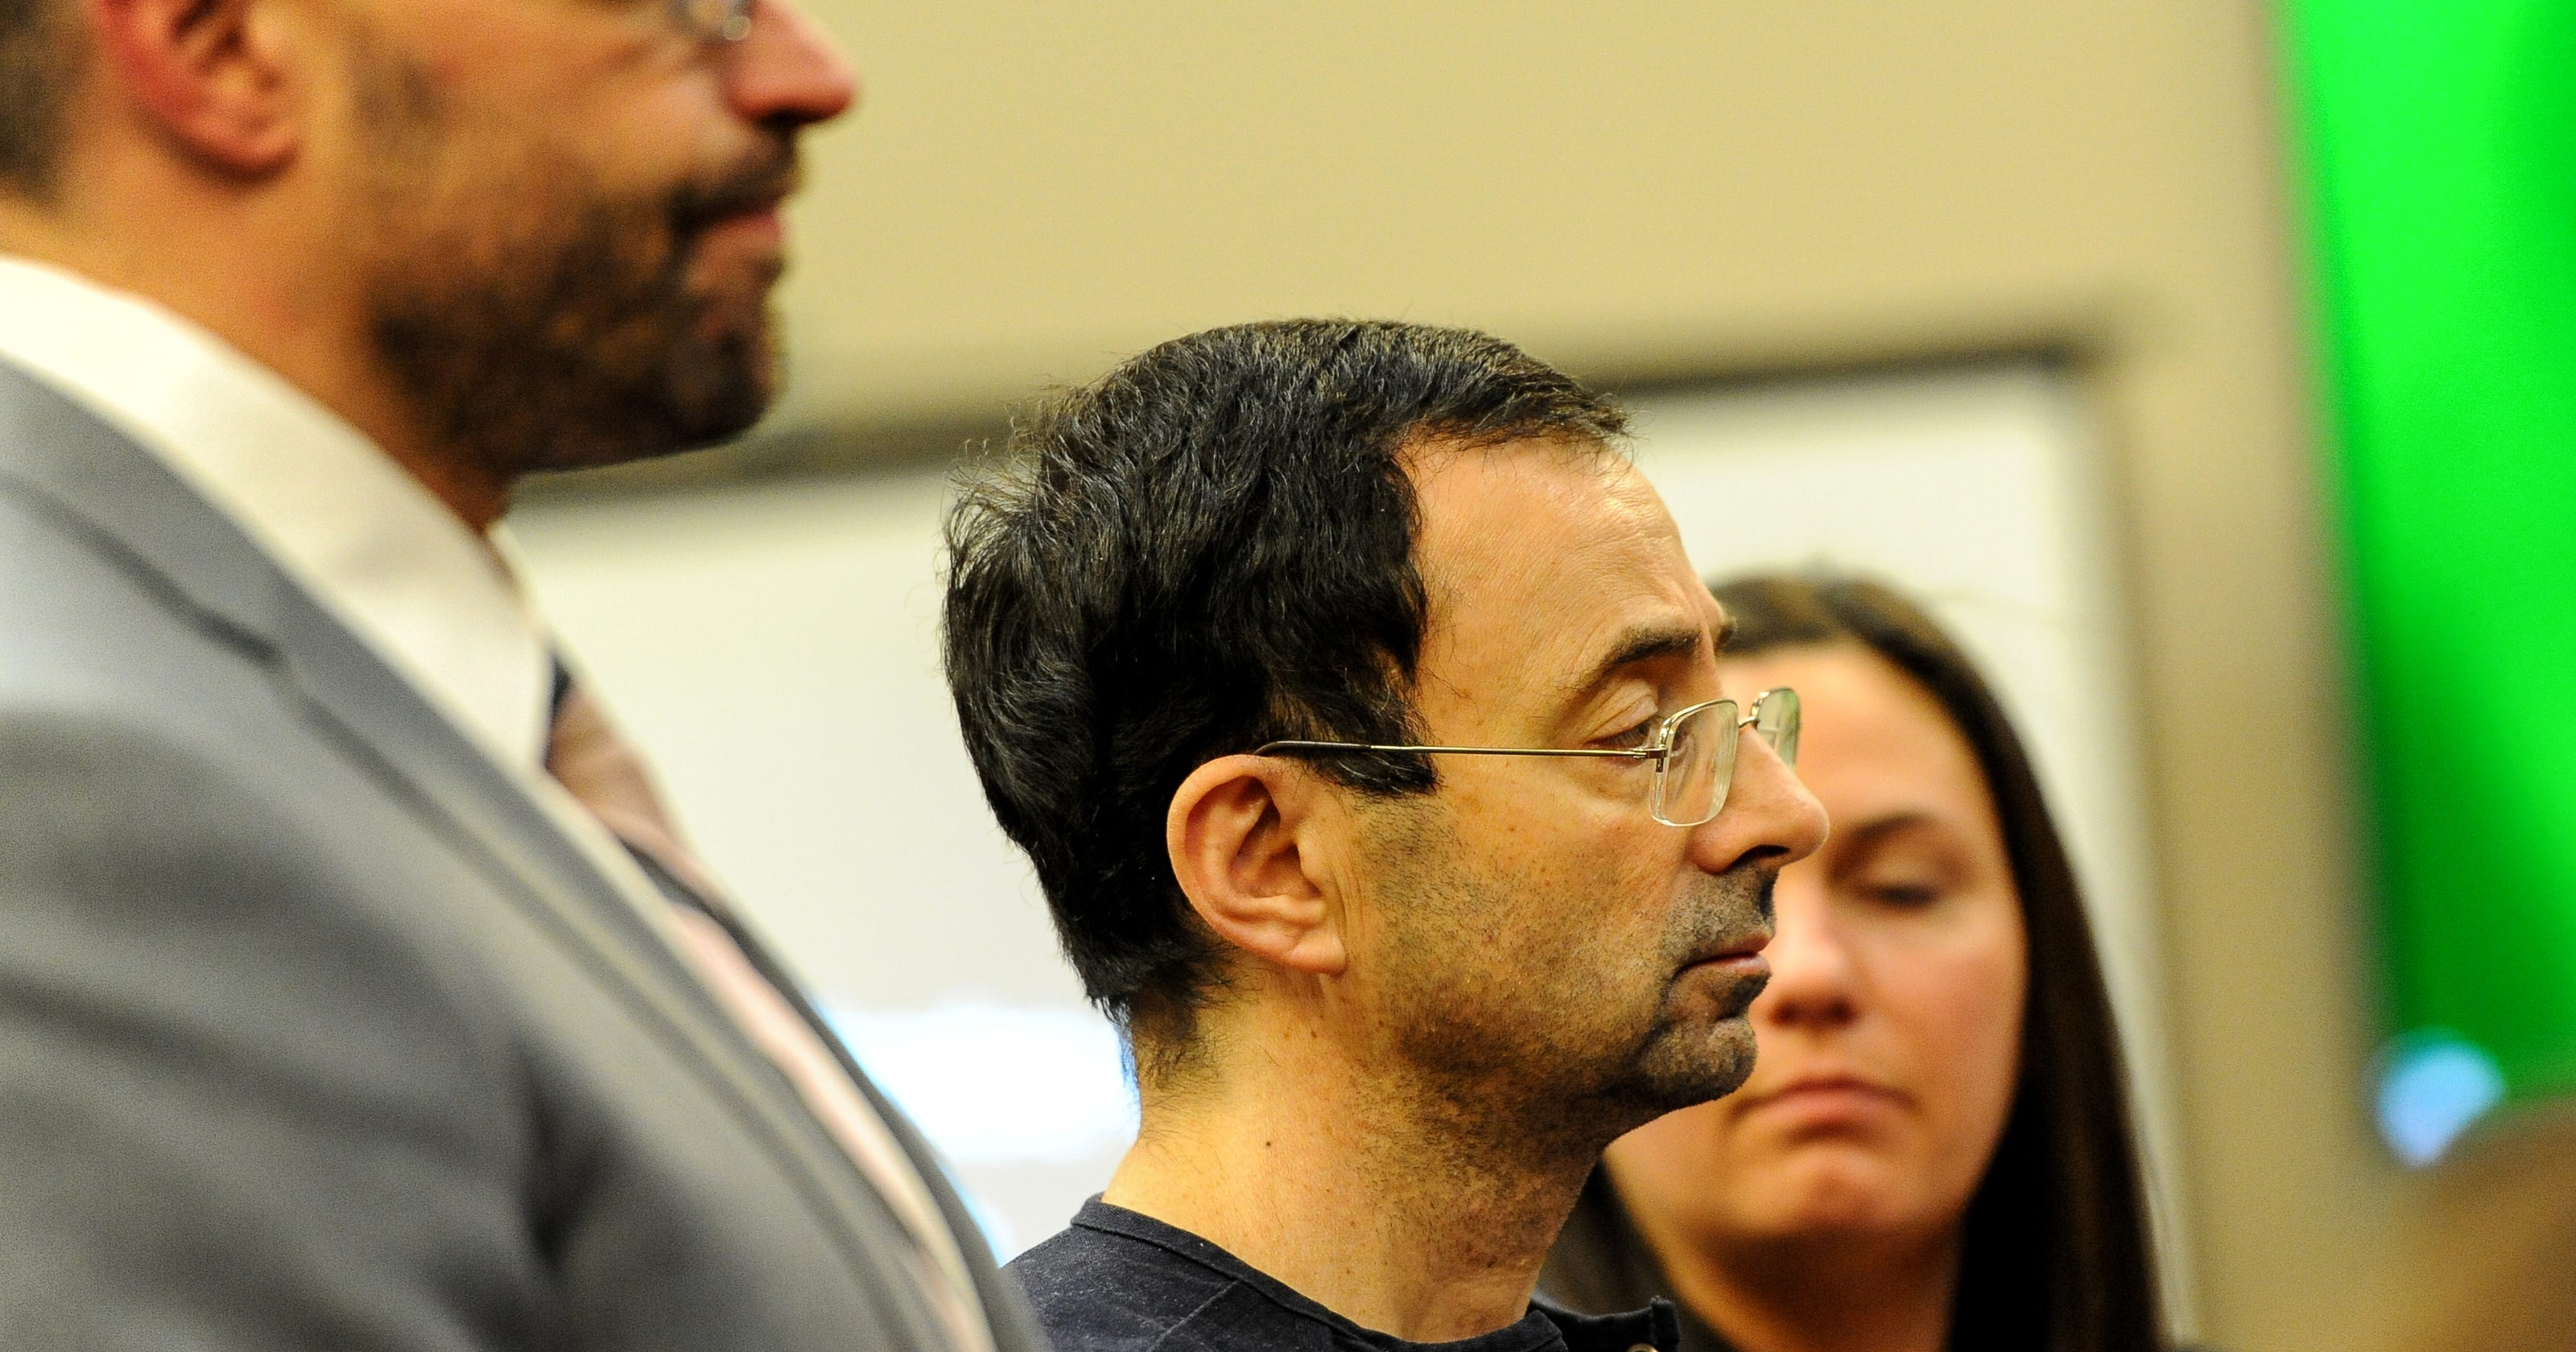 Larry Nassar sentenced to 40 to 175 years on sex assault charges